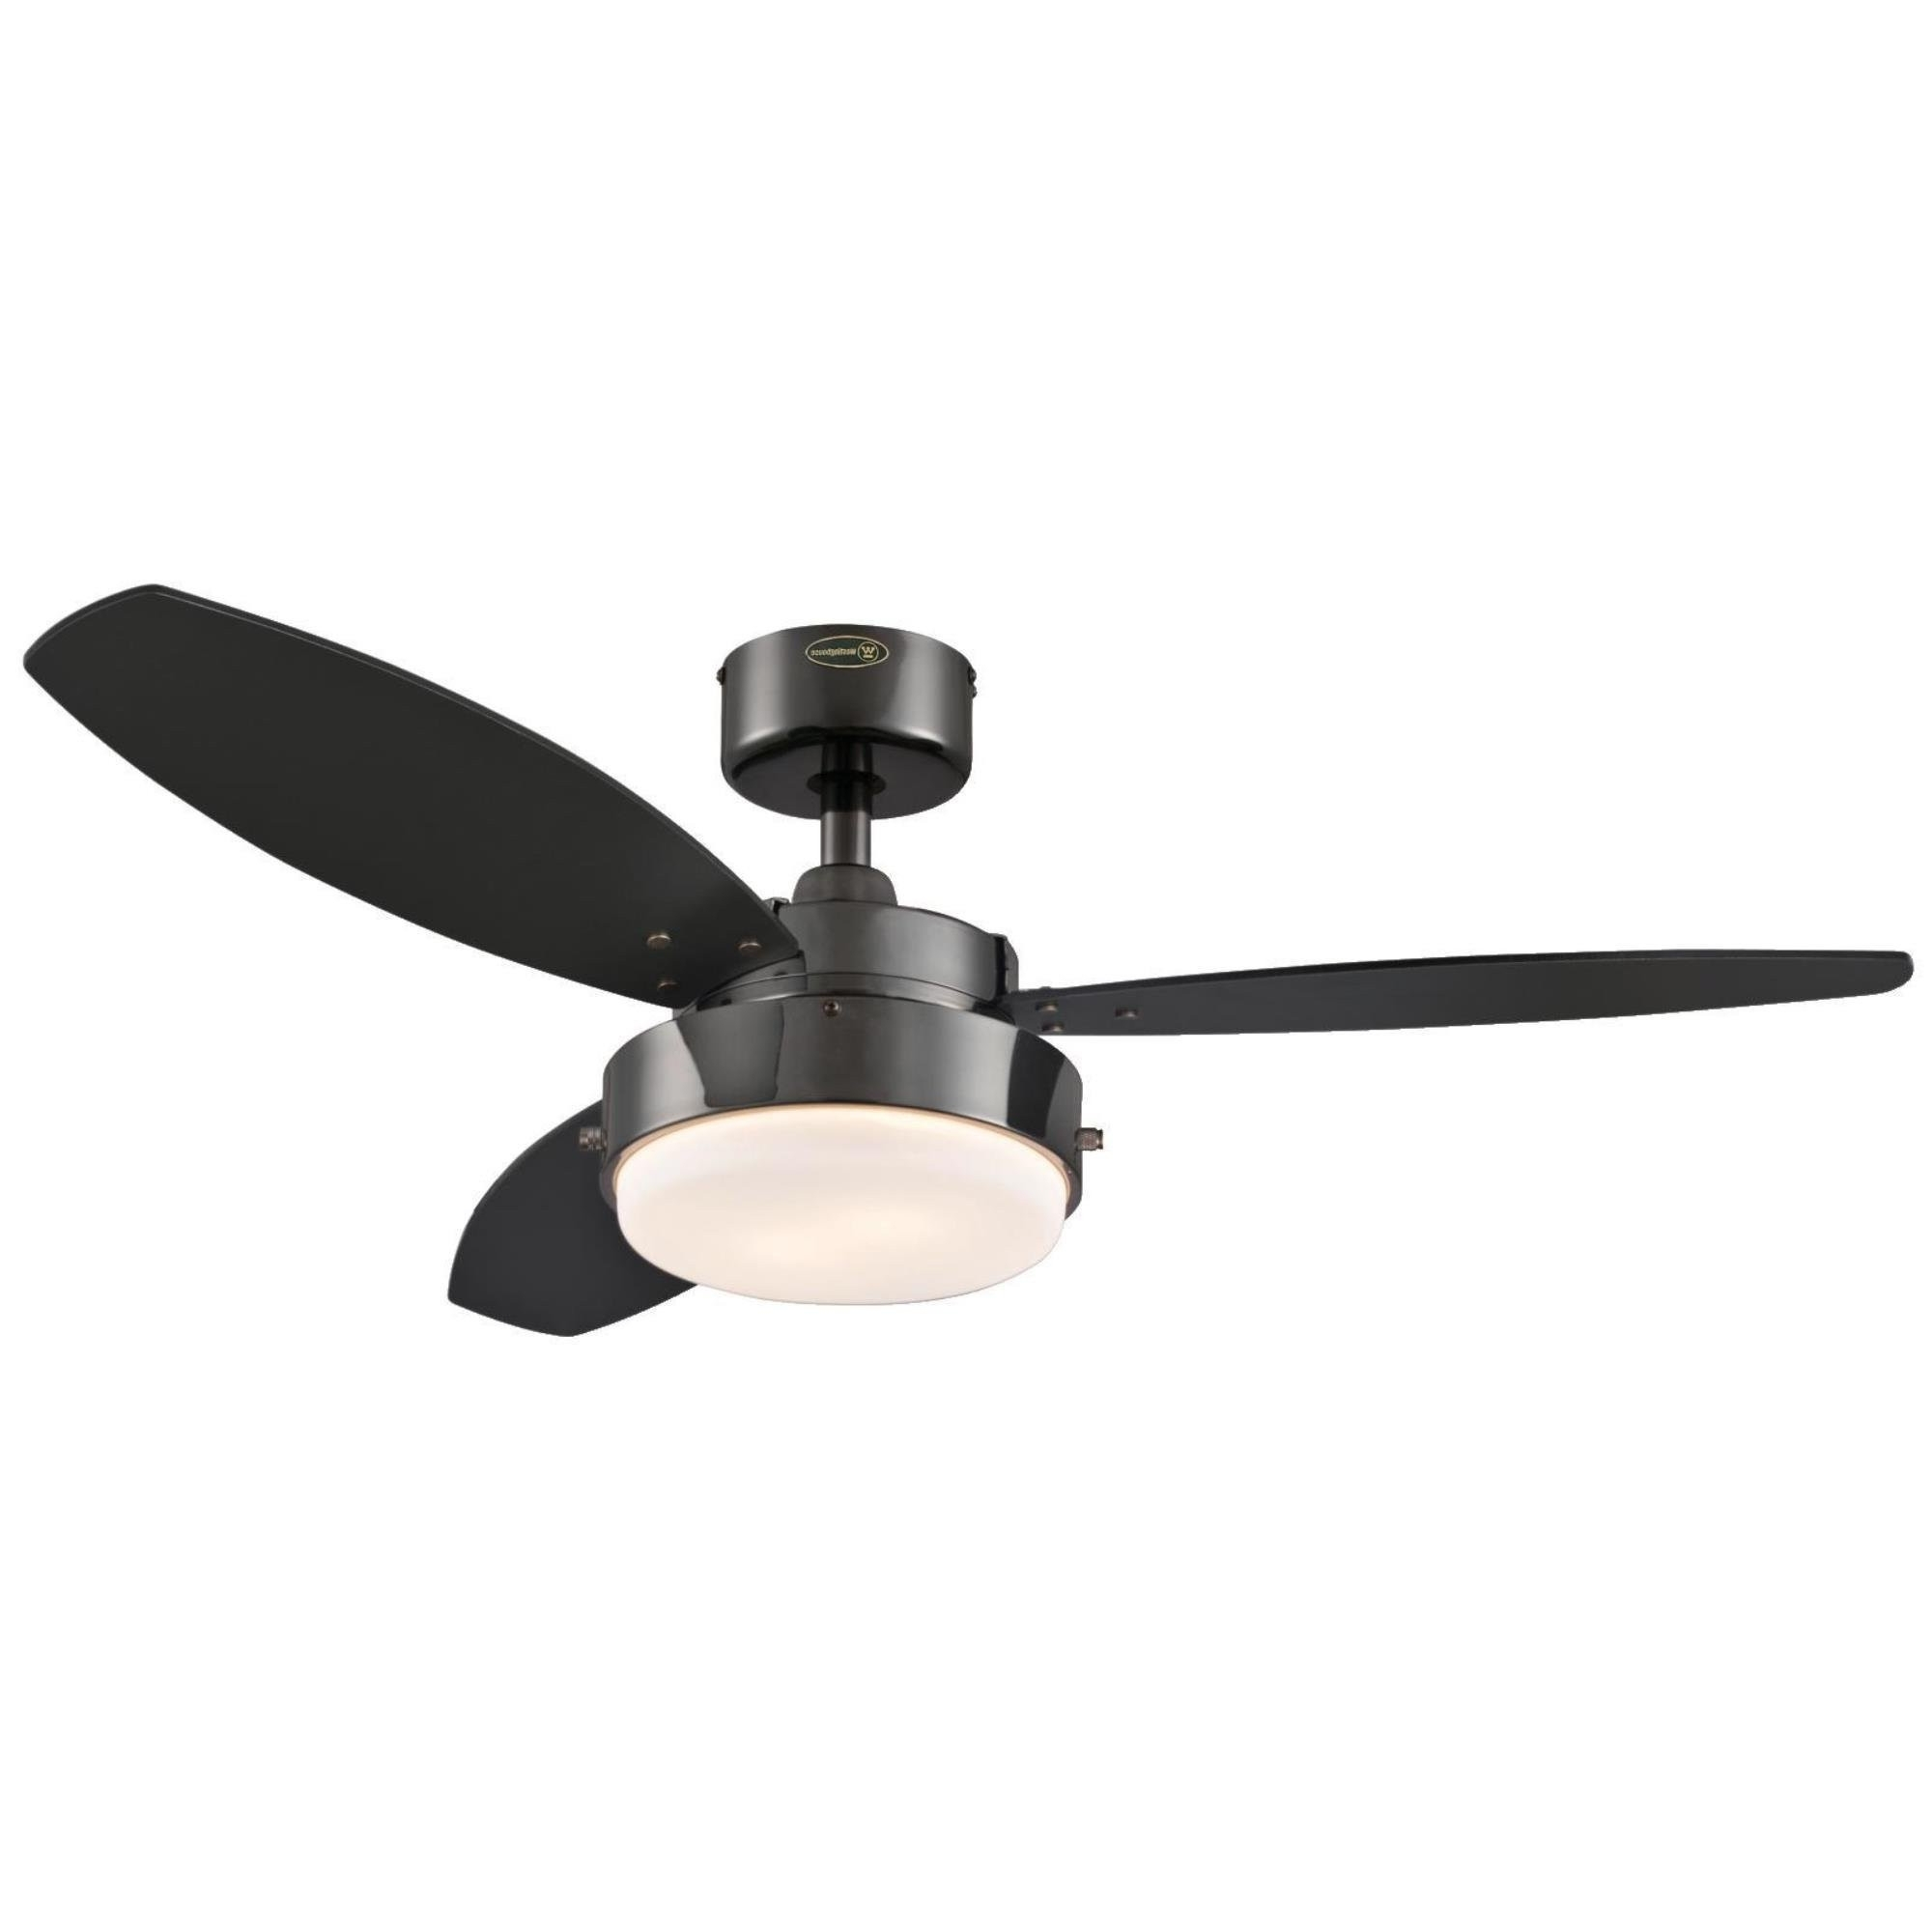 Recent Indoor Outdoor Ceiling Fan With Light Best Of St Ceiling Fan With Throughout Outdoor Ceiling Fans With Light And Remote (Gallery 18 of 20)